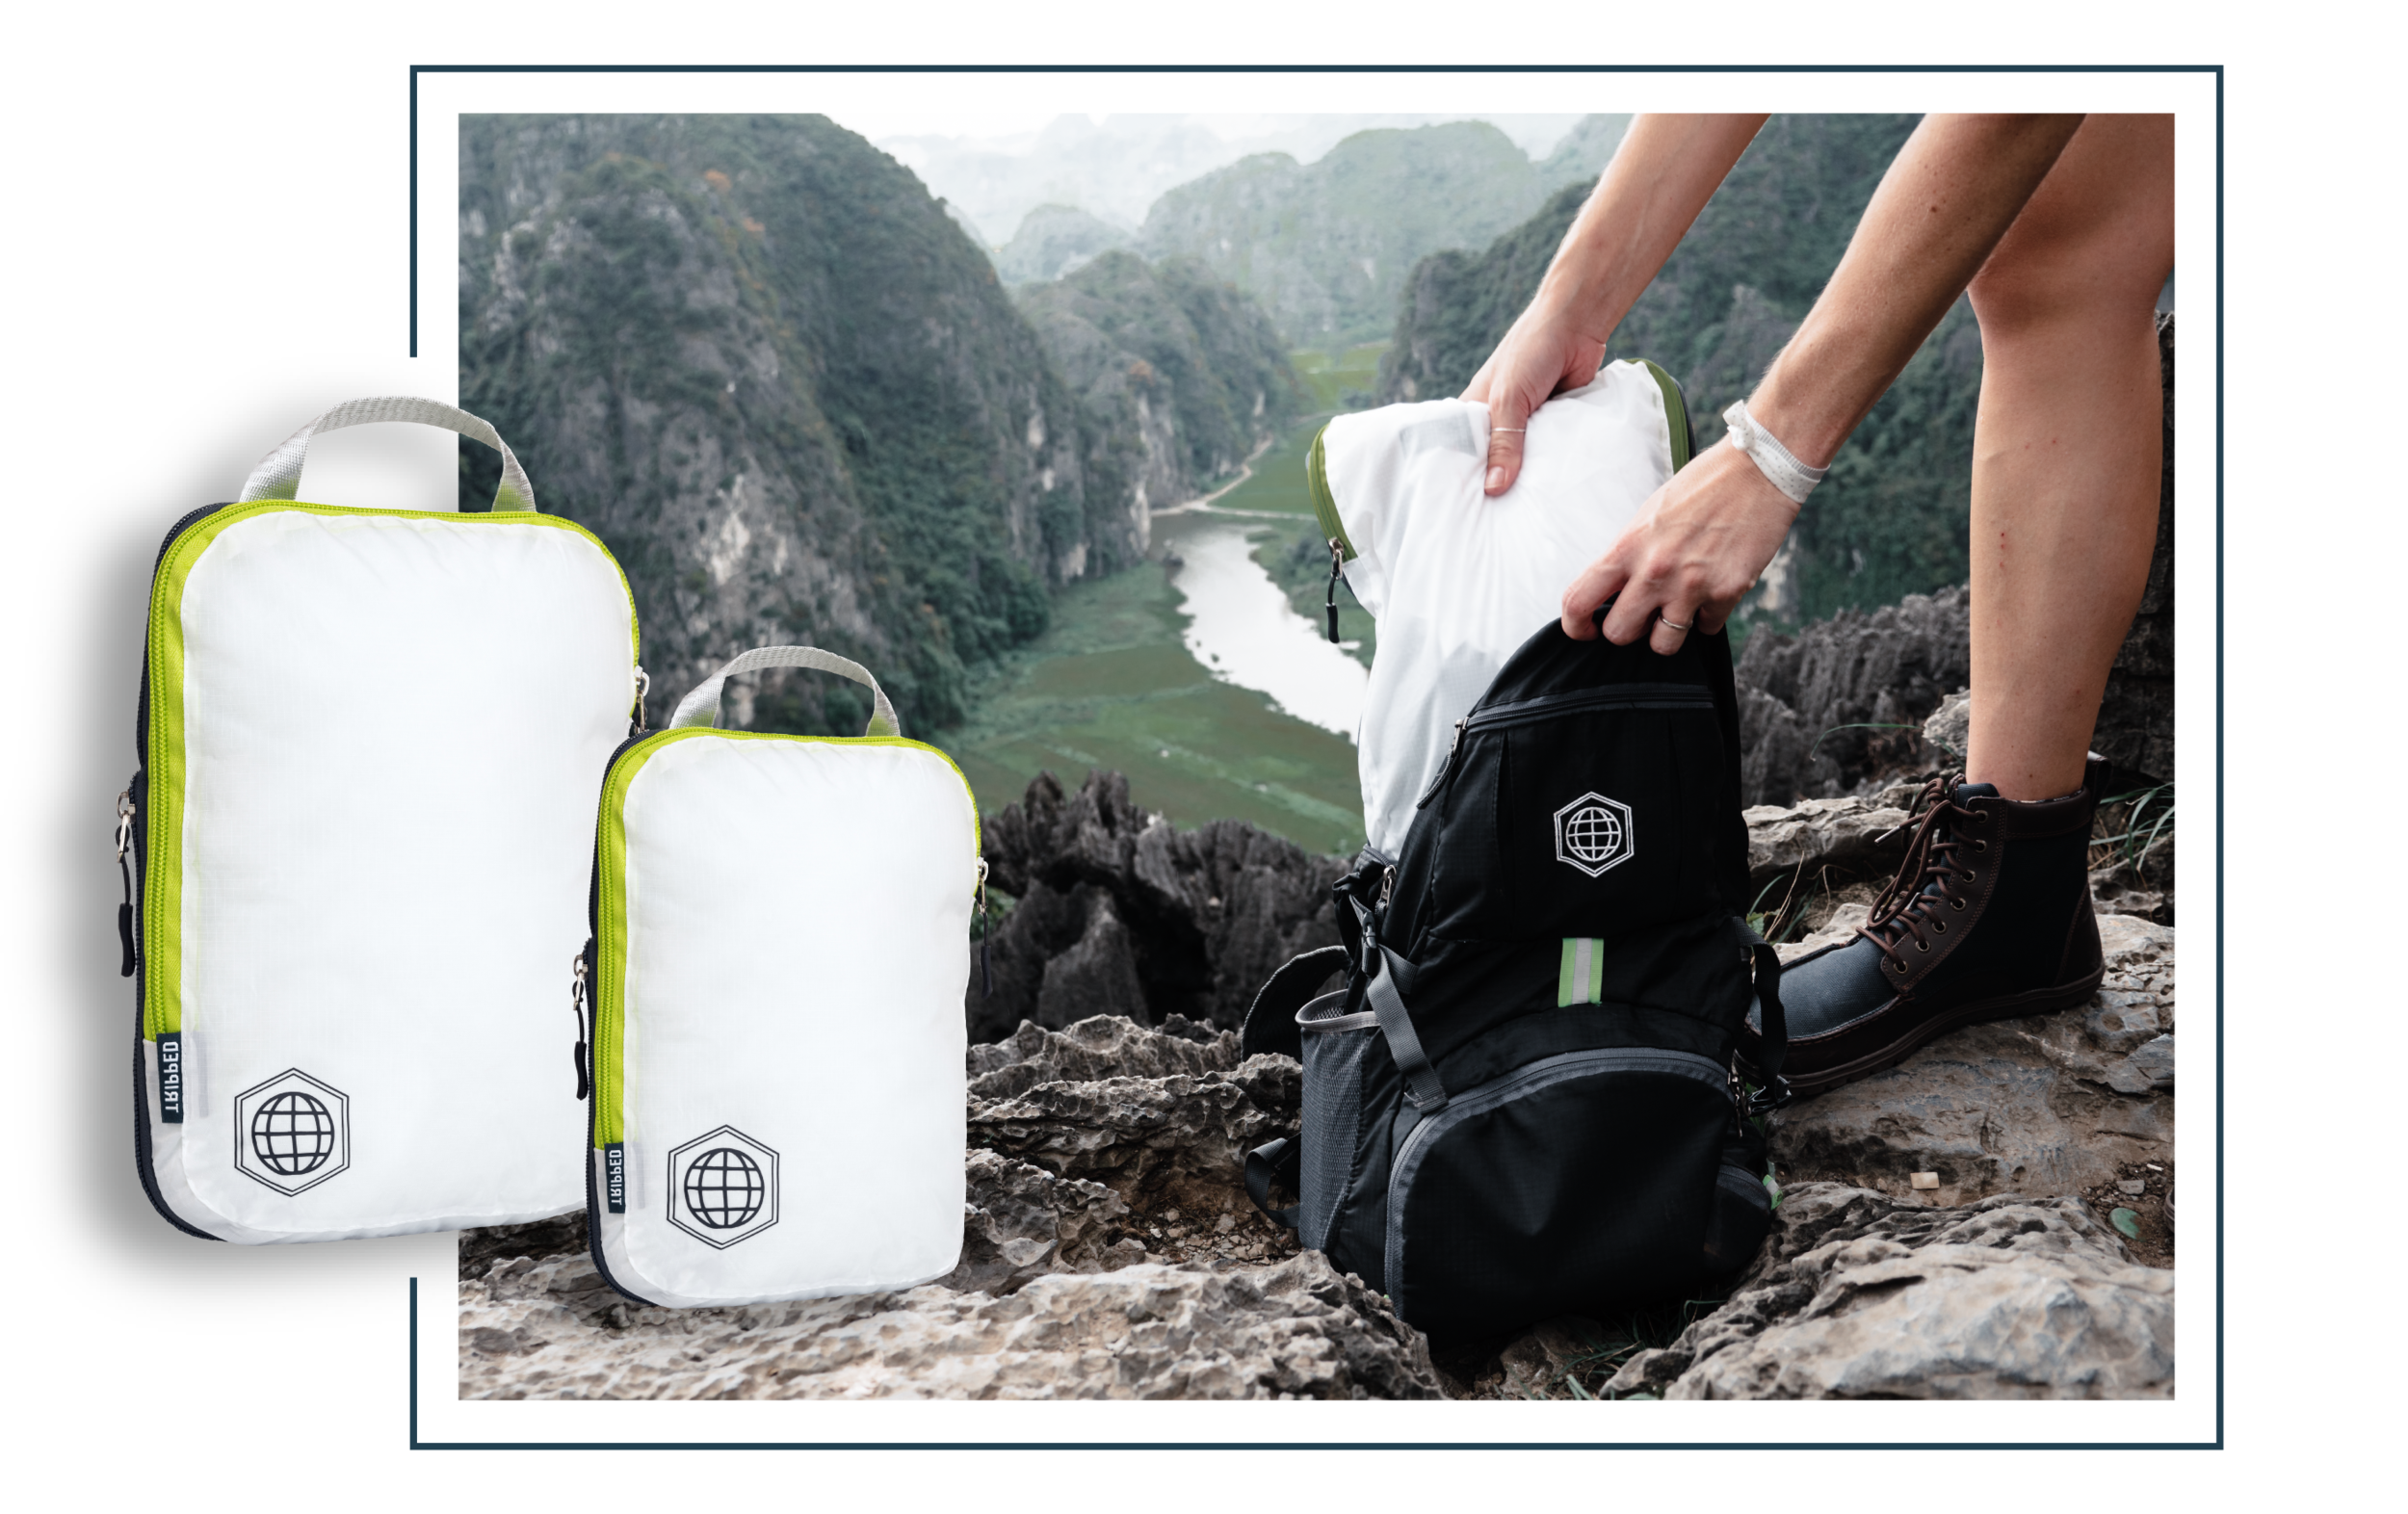 Compression packing cubes used in travel backpack with mountain background.